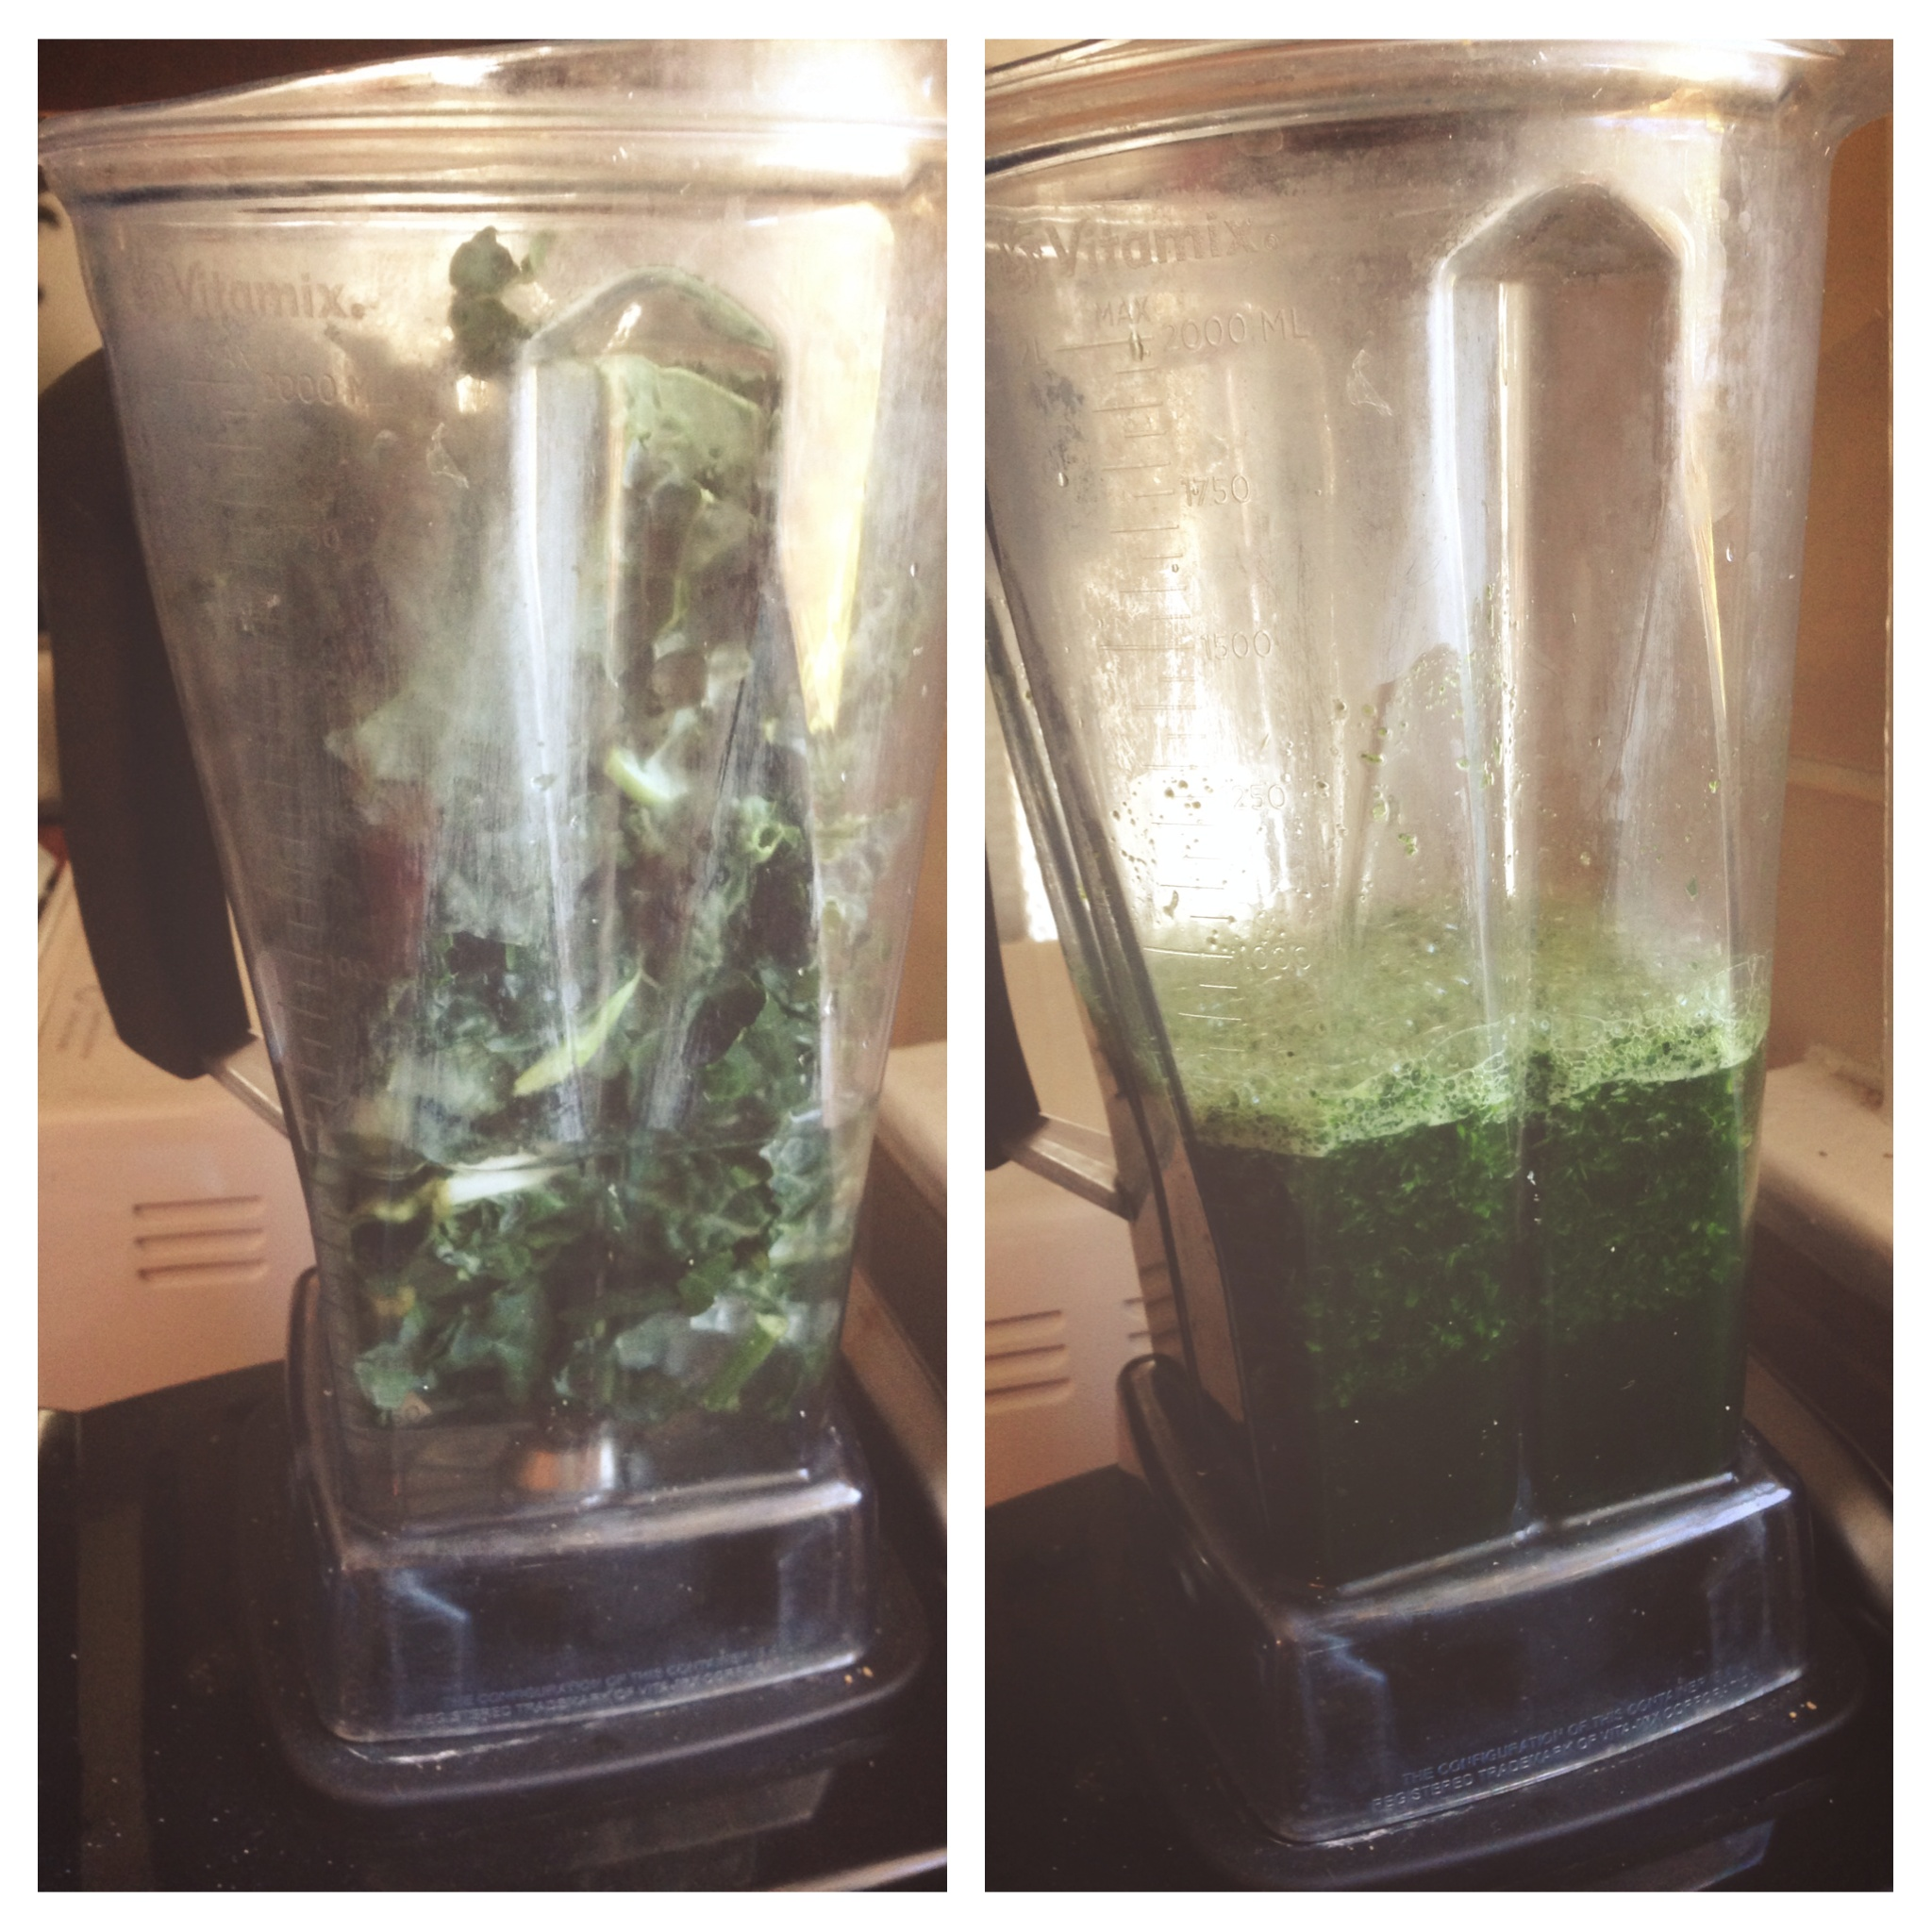 We use the organic tuscan kale from Trader Joes. It's already washed and chopped, saving me a lot of time and making this drink doable on a day to day basis.